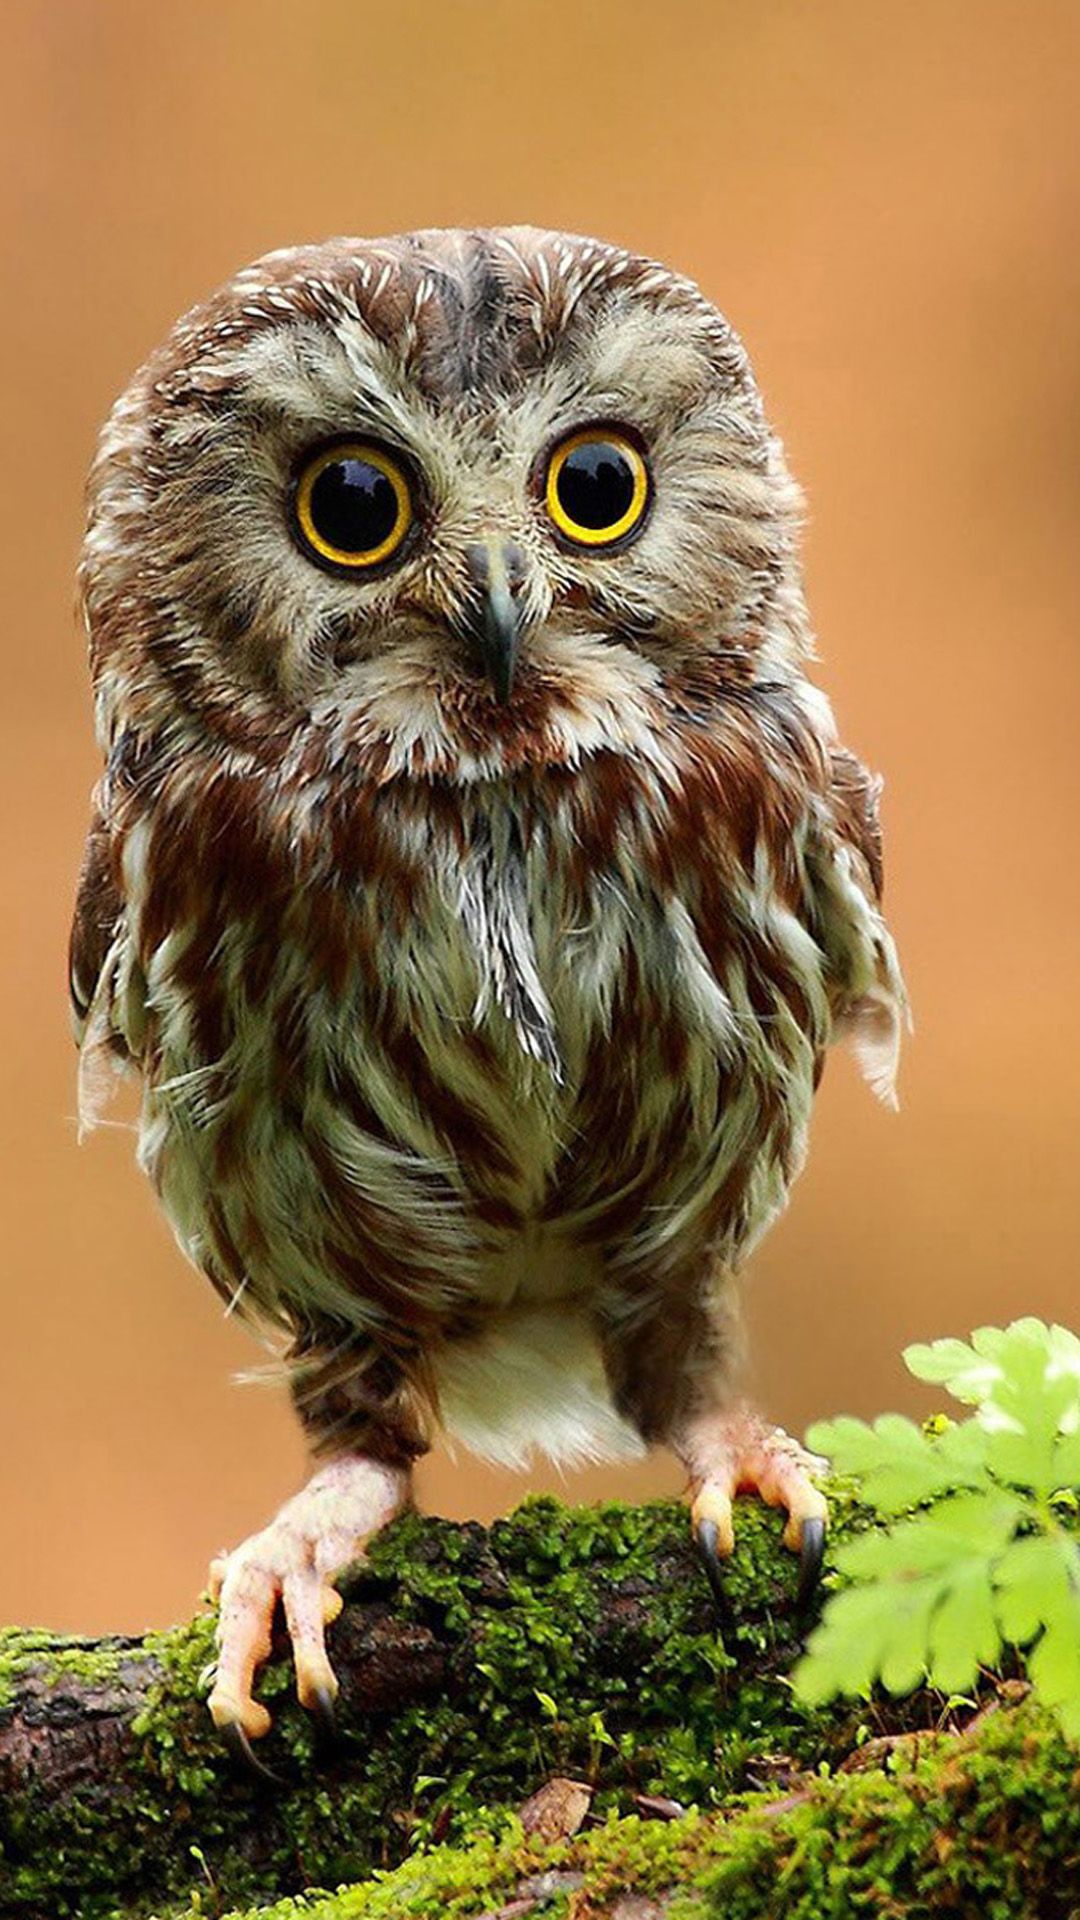 Little Owl In Gods Eyes